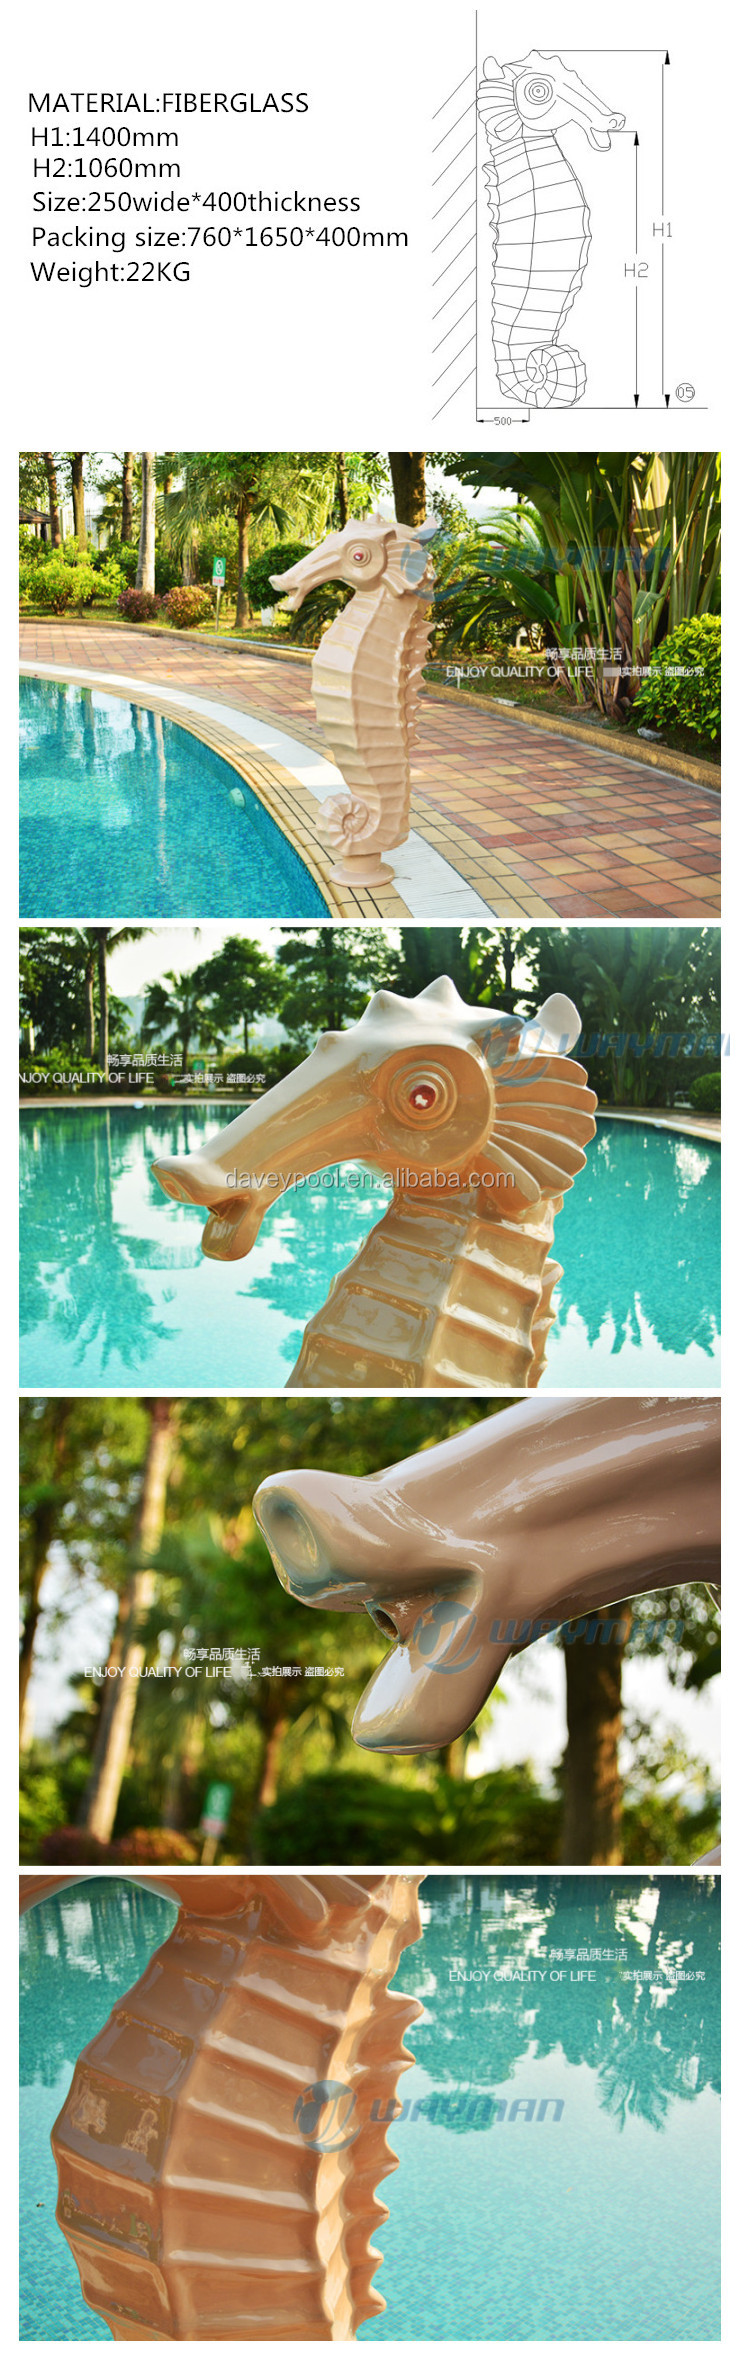 Stainless Steel Swimming Pool Water Curtain Gardening Outdoor Wall Fountain Waterfalls Buy